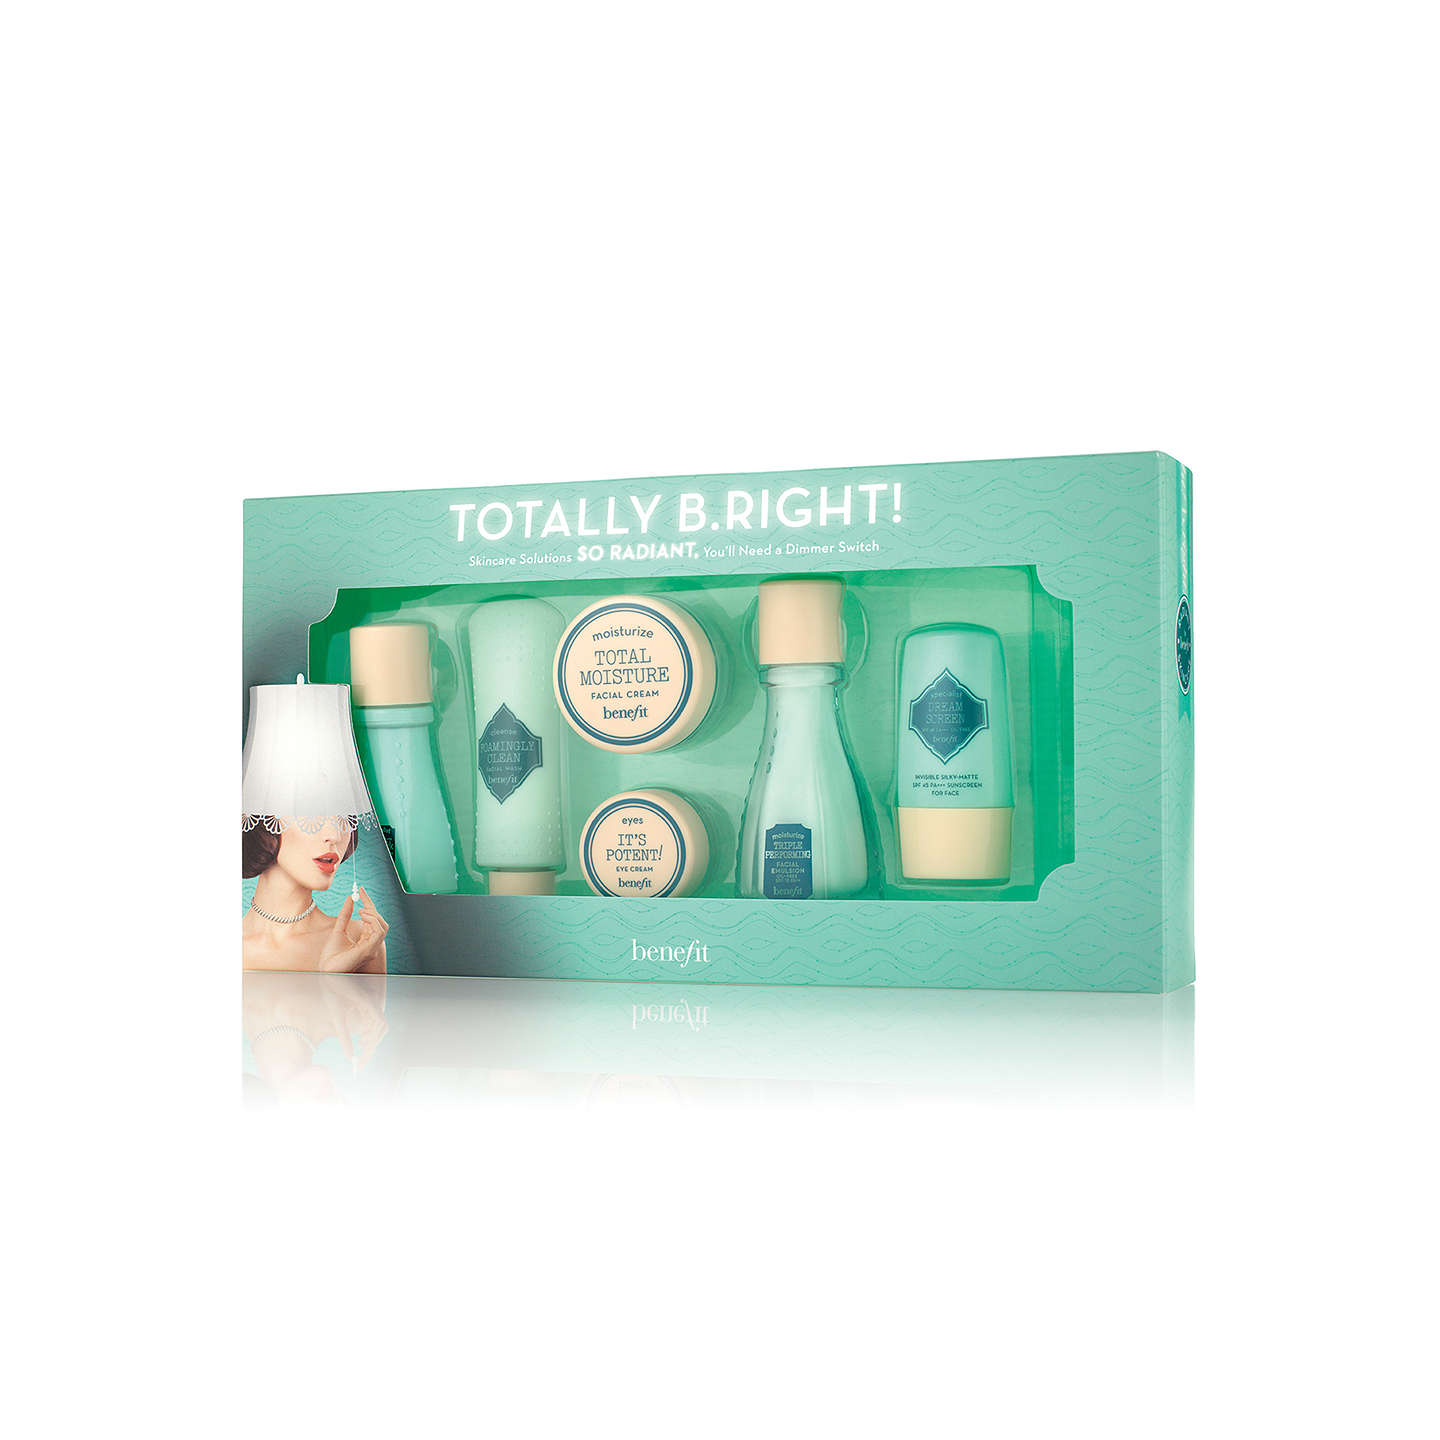 BuyBenefit 'Totally B.Right!' Skincare Gift Set Online at johnlewis.com